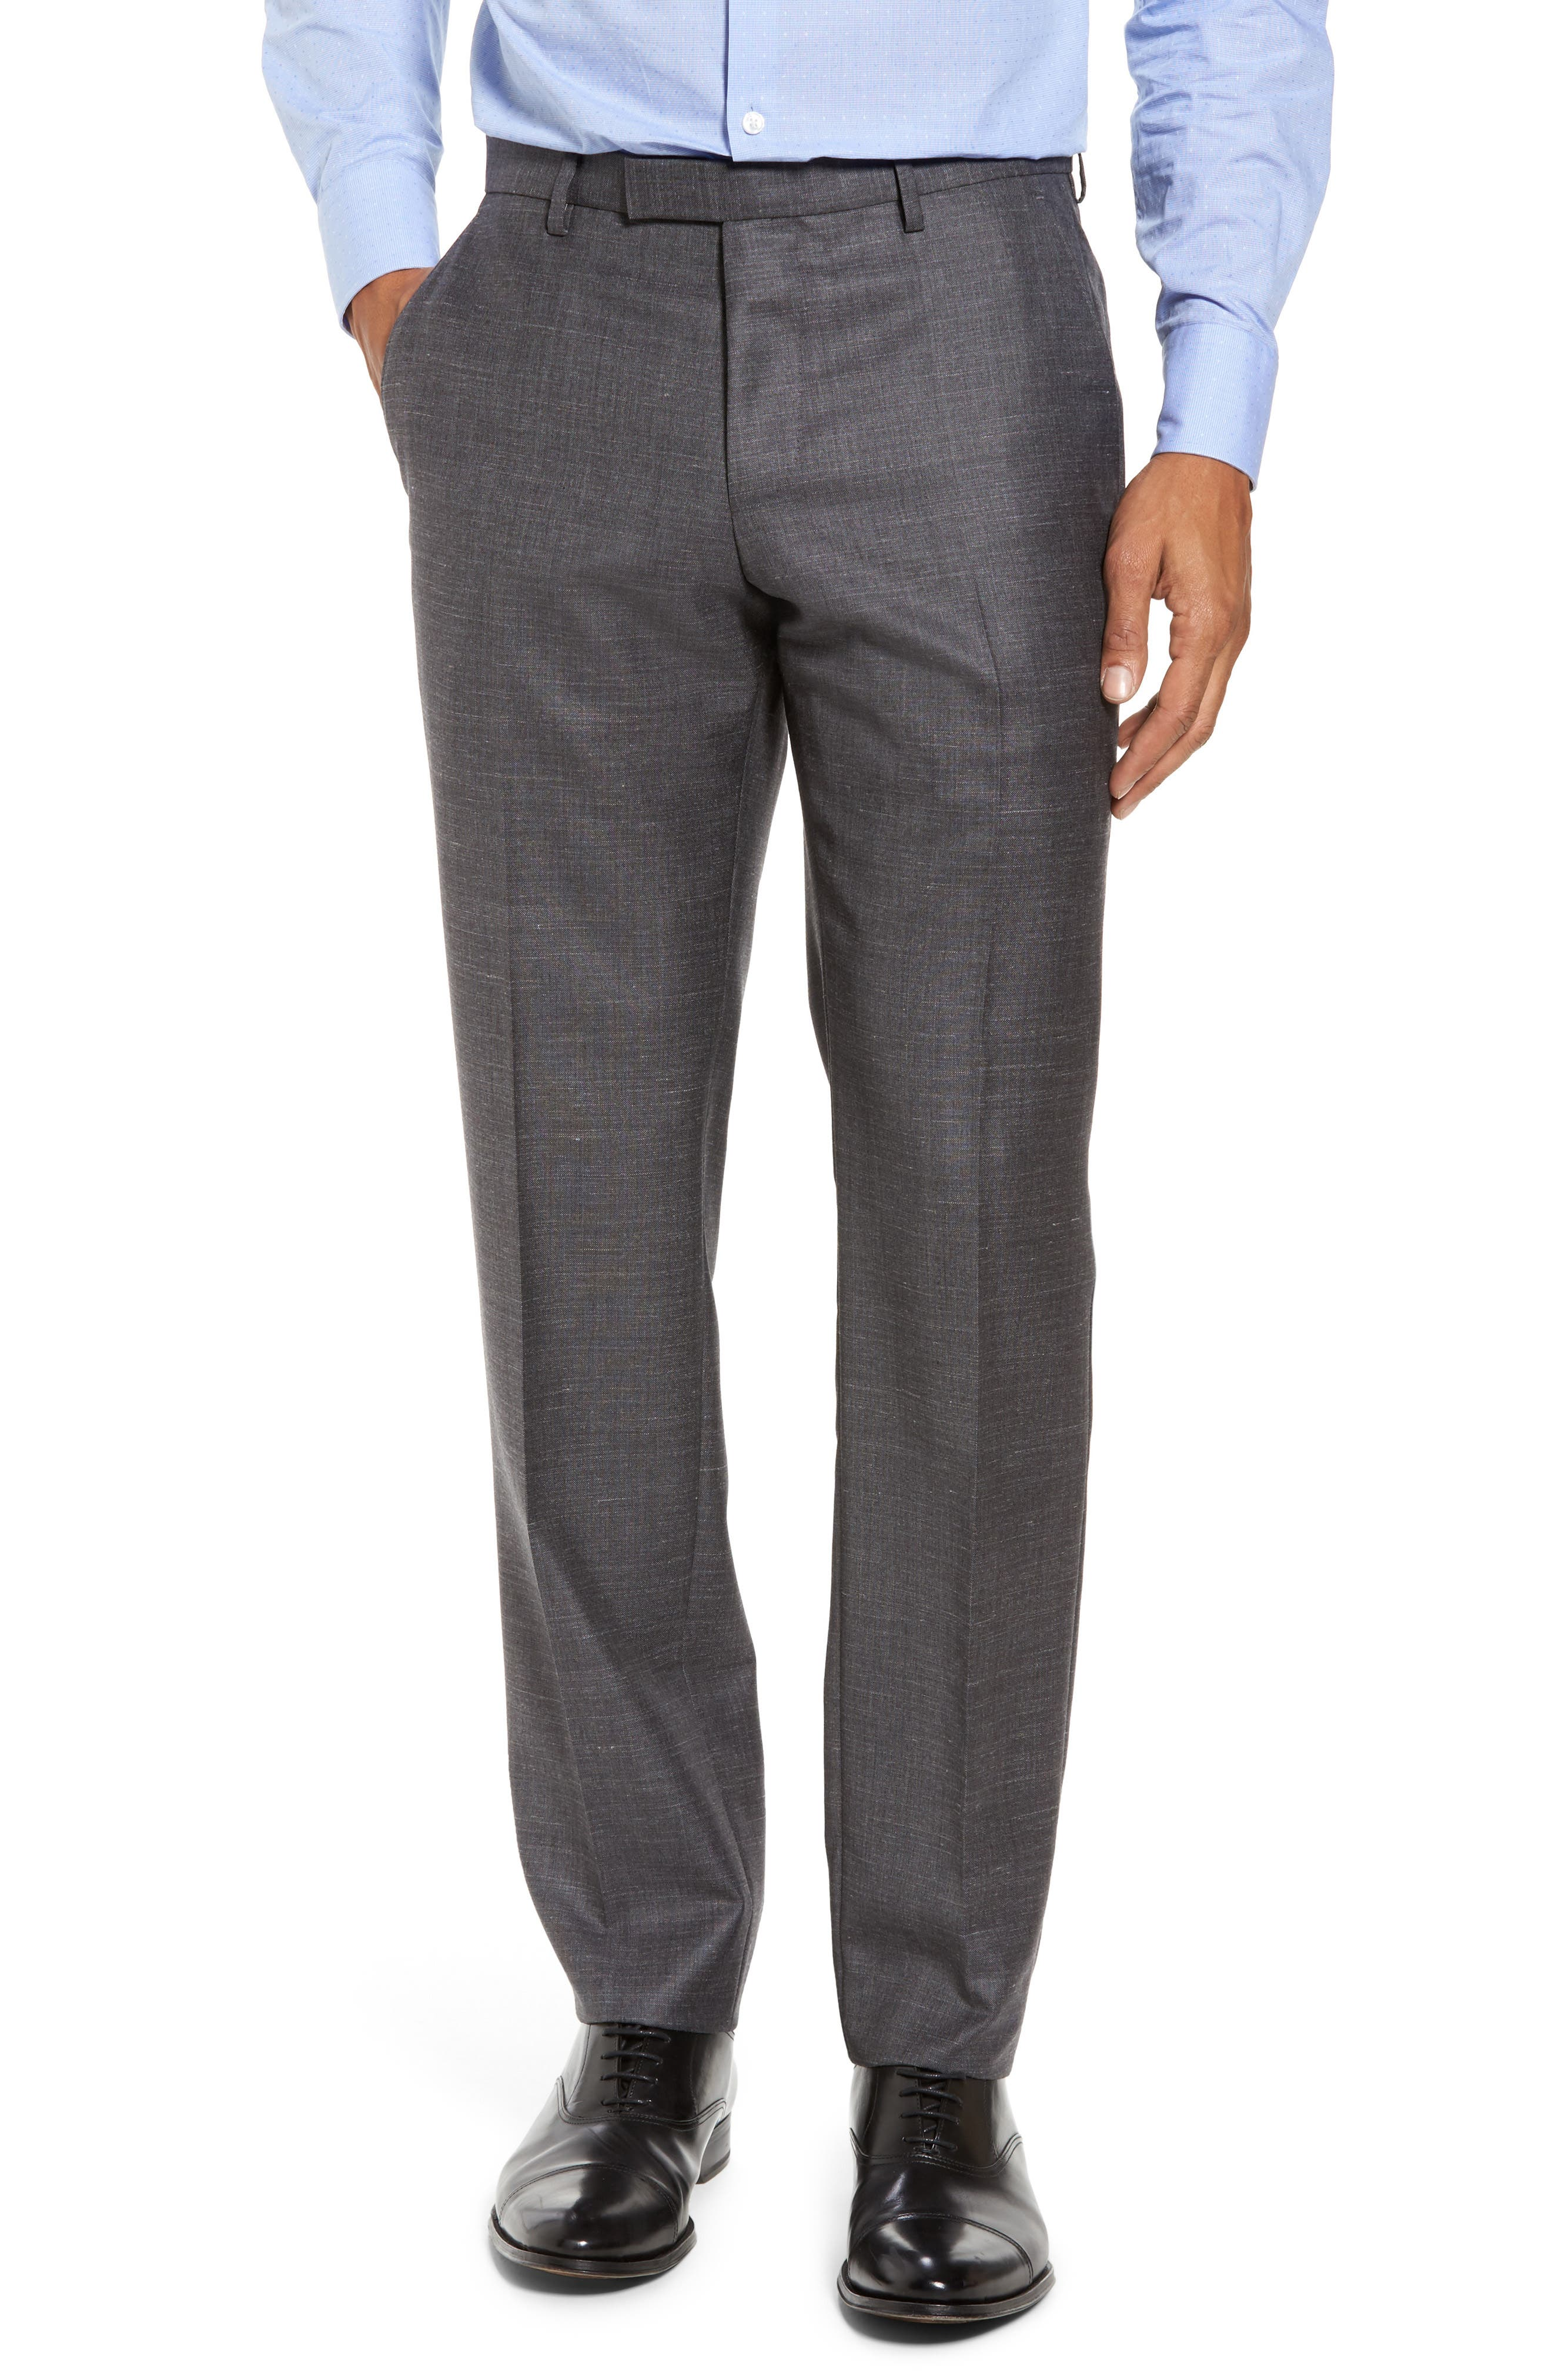 Johnstons/Lenon Classic Fit Solid Wool Blend Suit,                             Alternate thumbnail 6, color,                             Open Grey